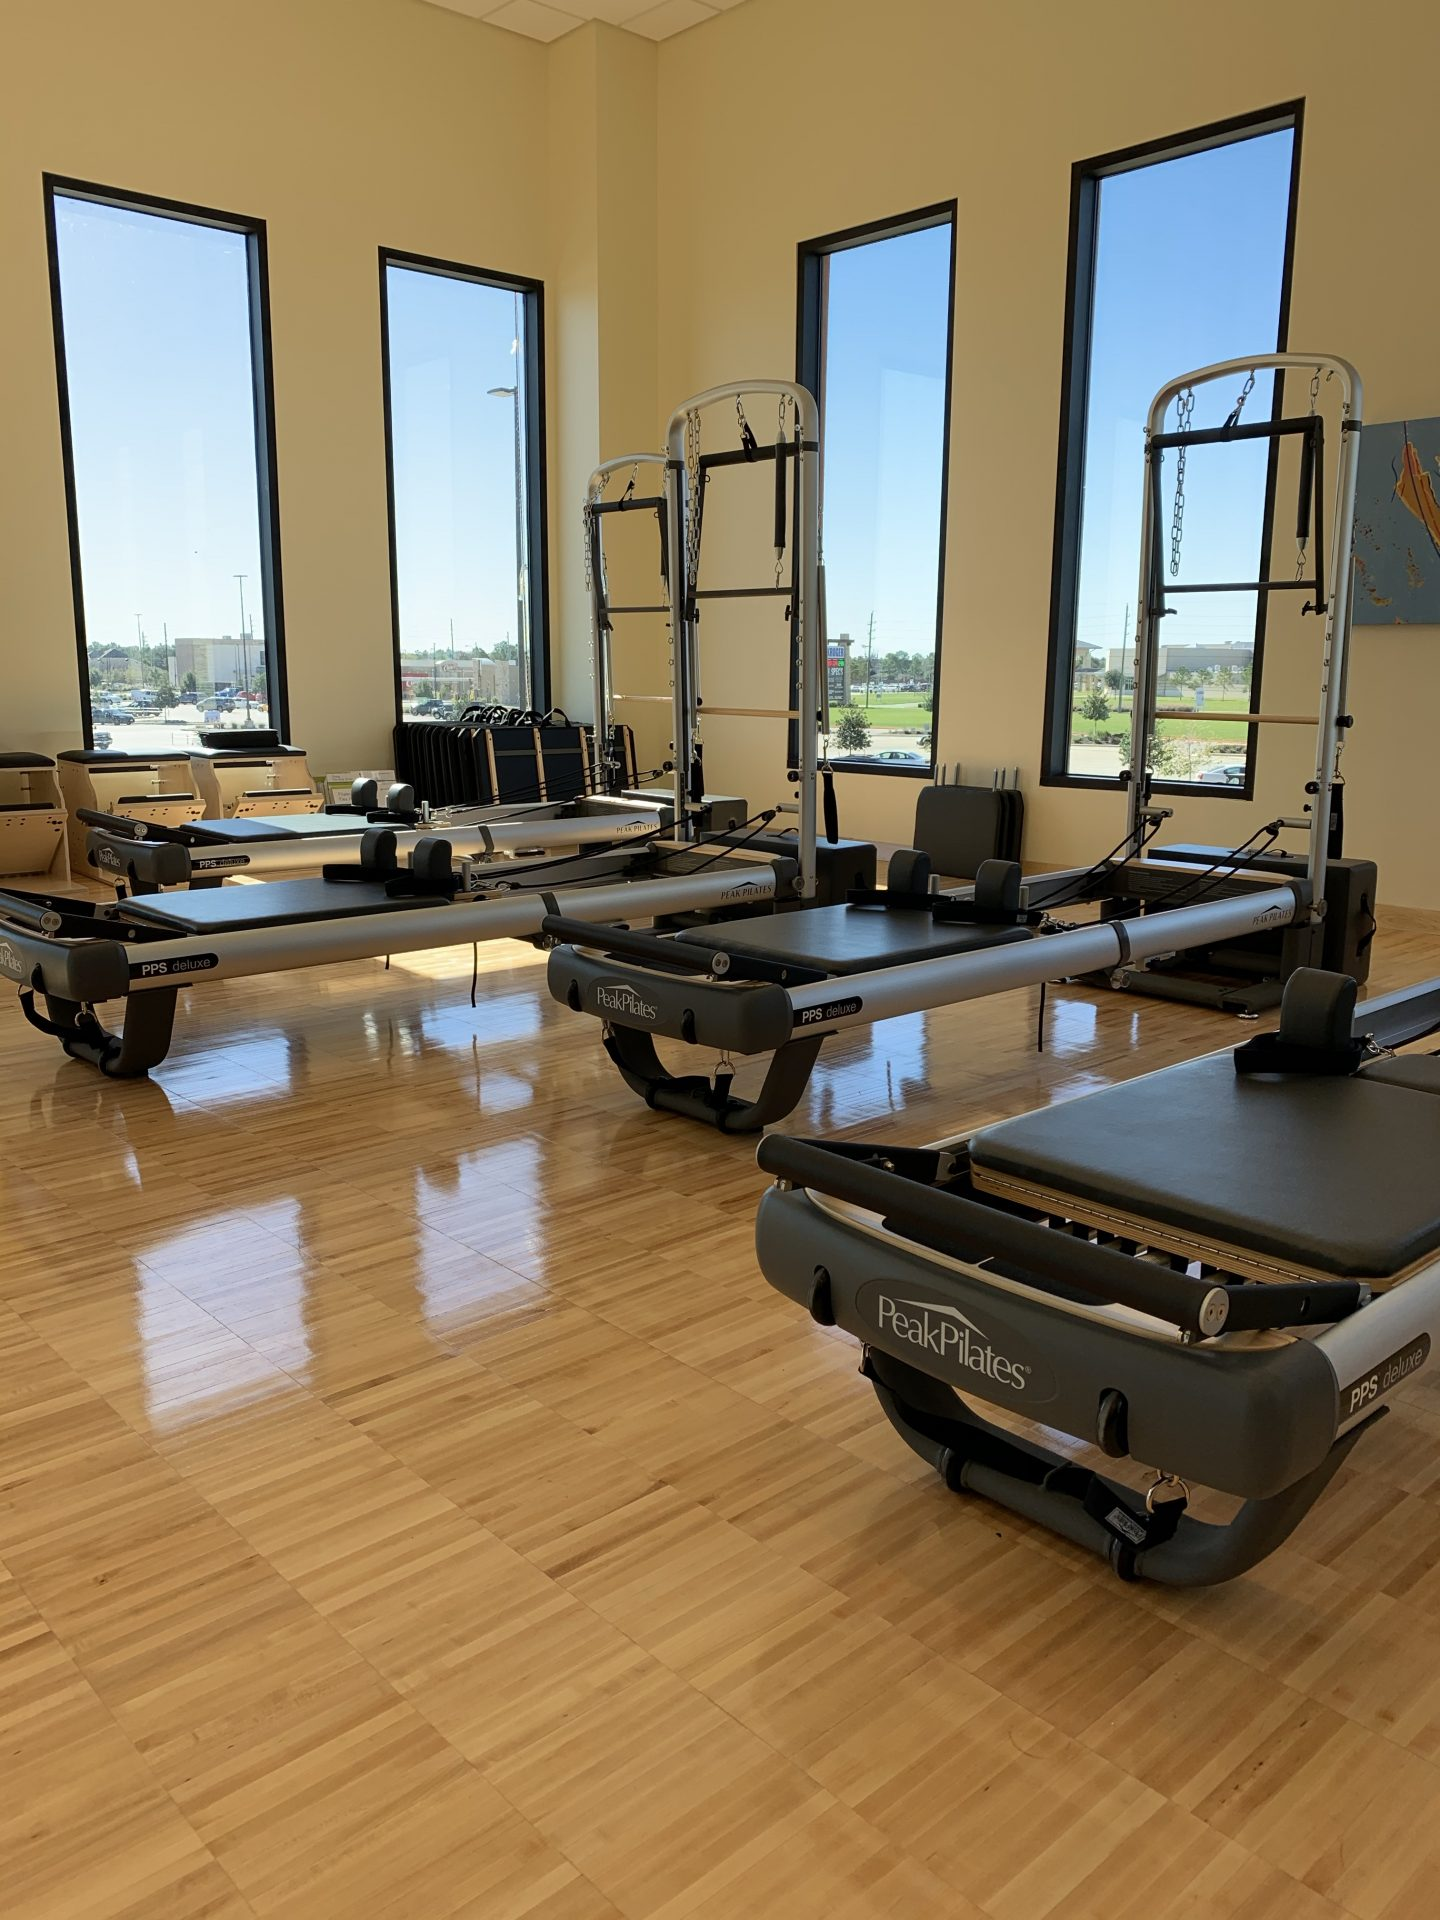 pilates reformer - gyms in katy tx - villa sport cinco ranch